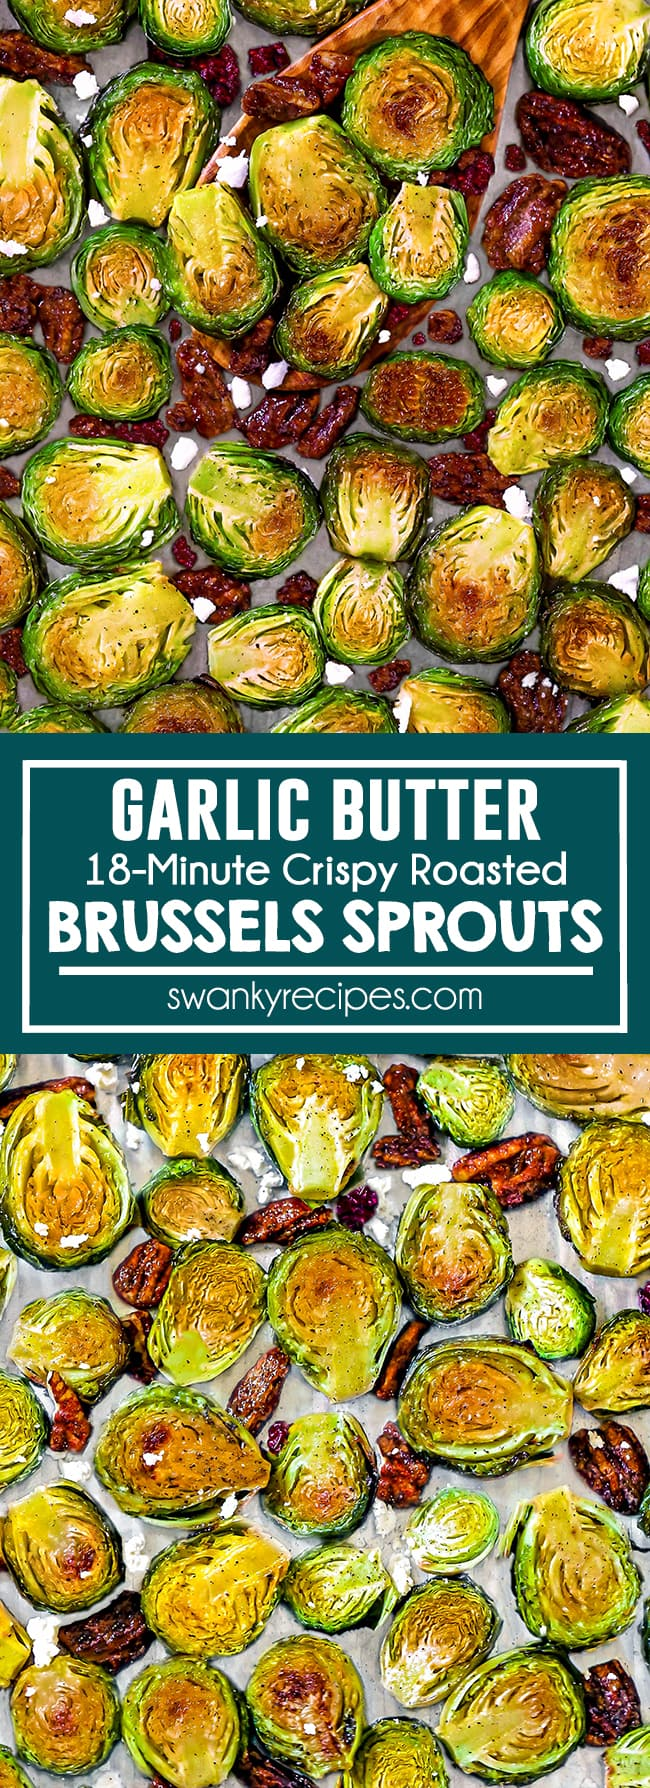 Roasted golden brown brussels sprouts with charred tops on a sheet pan with a wooden spoon. Candied pecans, crumbled feta cheese, bacon, and dried cranberries sprinkled in between sprouts Text in the middle in a blue green boarder reads Garlic Butter (18-minute crispy roasted) Brussels Sprouts. Second image features brussels sprouts tops on a sheet pan with feta cheese, dried cranberries, and candied pecan halves.